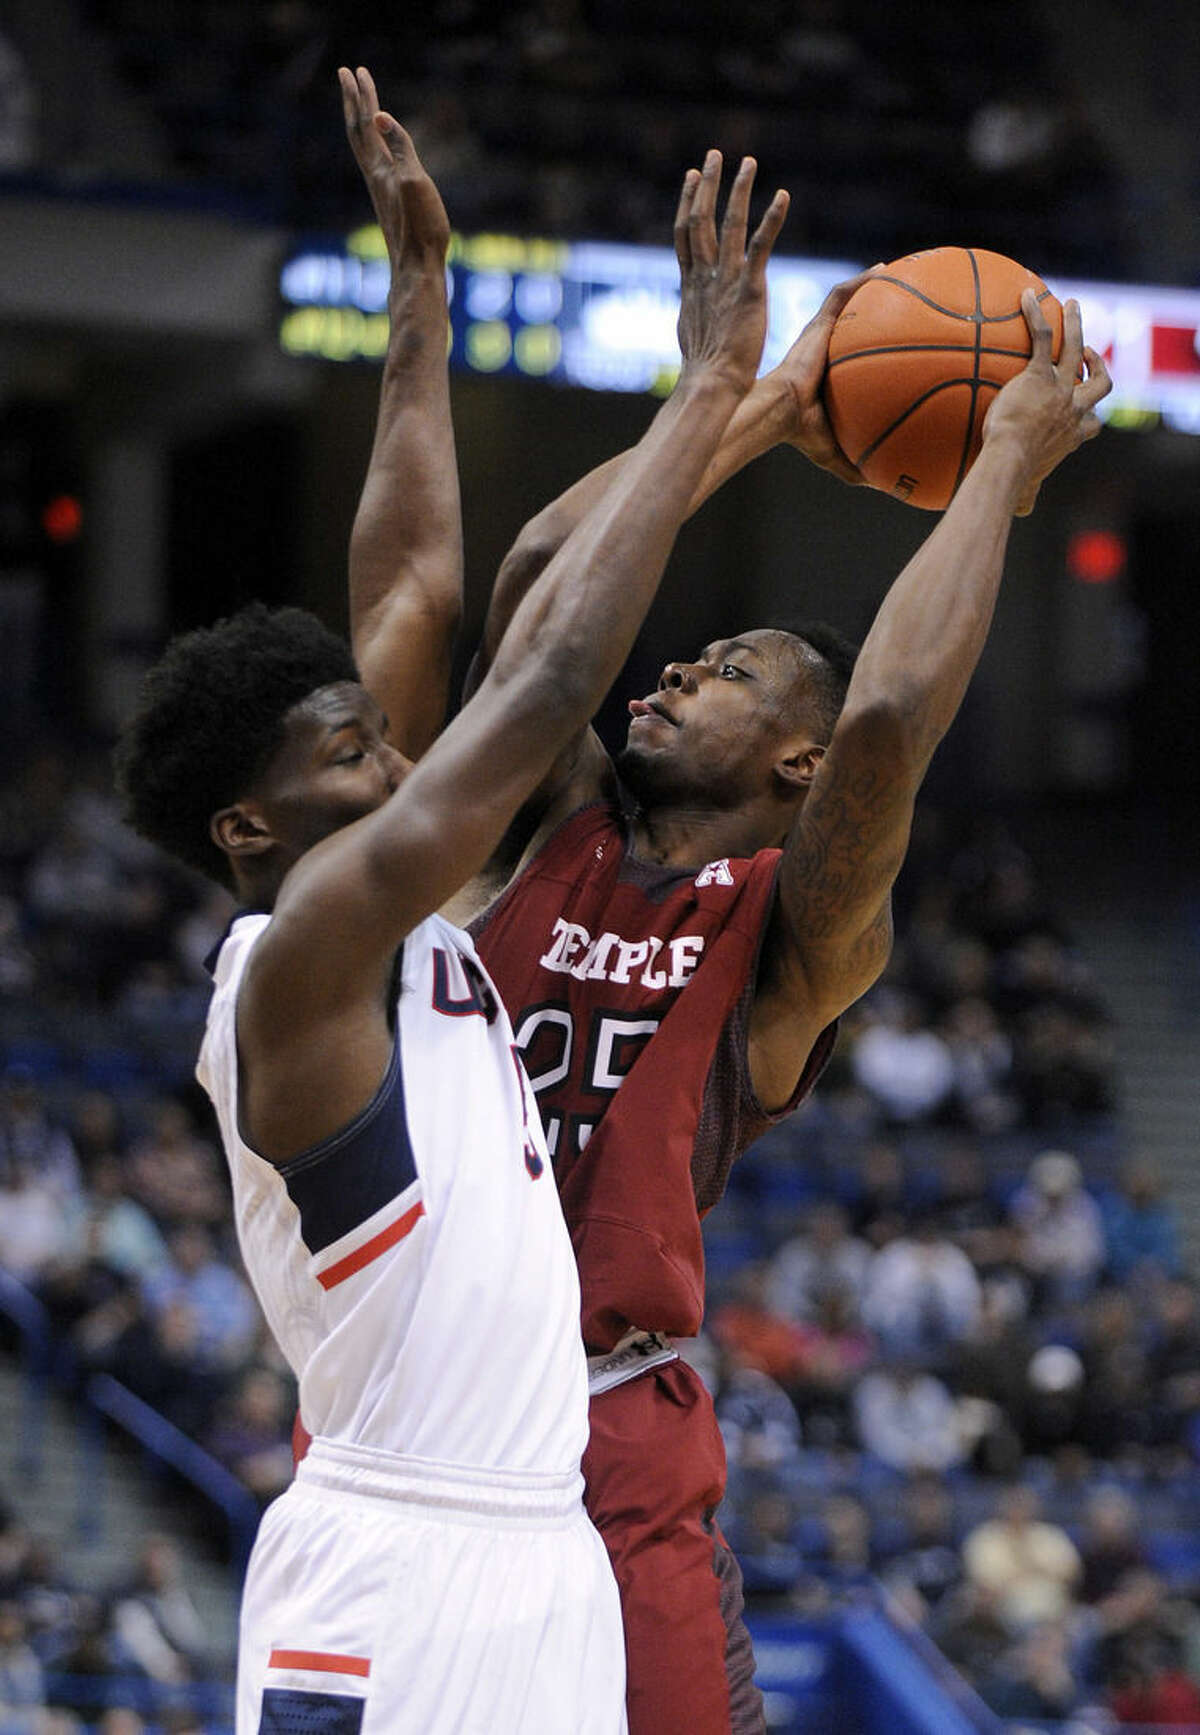 Temple's Quenton DeCosey (25) shoots over Connecticut's Daniel Hamilton (5) during the first half of an NCAA college basketball game in Hartford, Conn., on Wednesday, Dec. 31, 2014. (AP Photo/Fred Beckham)